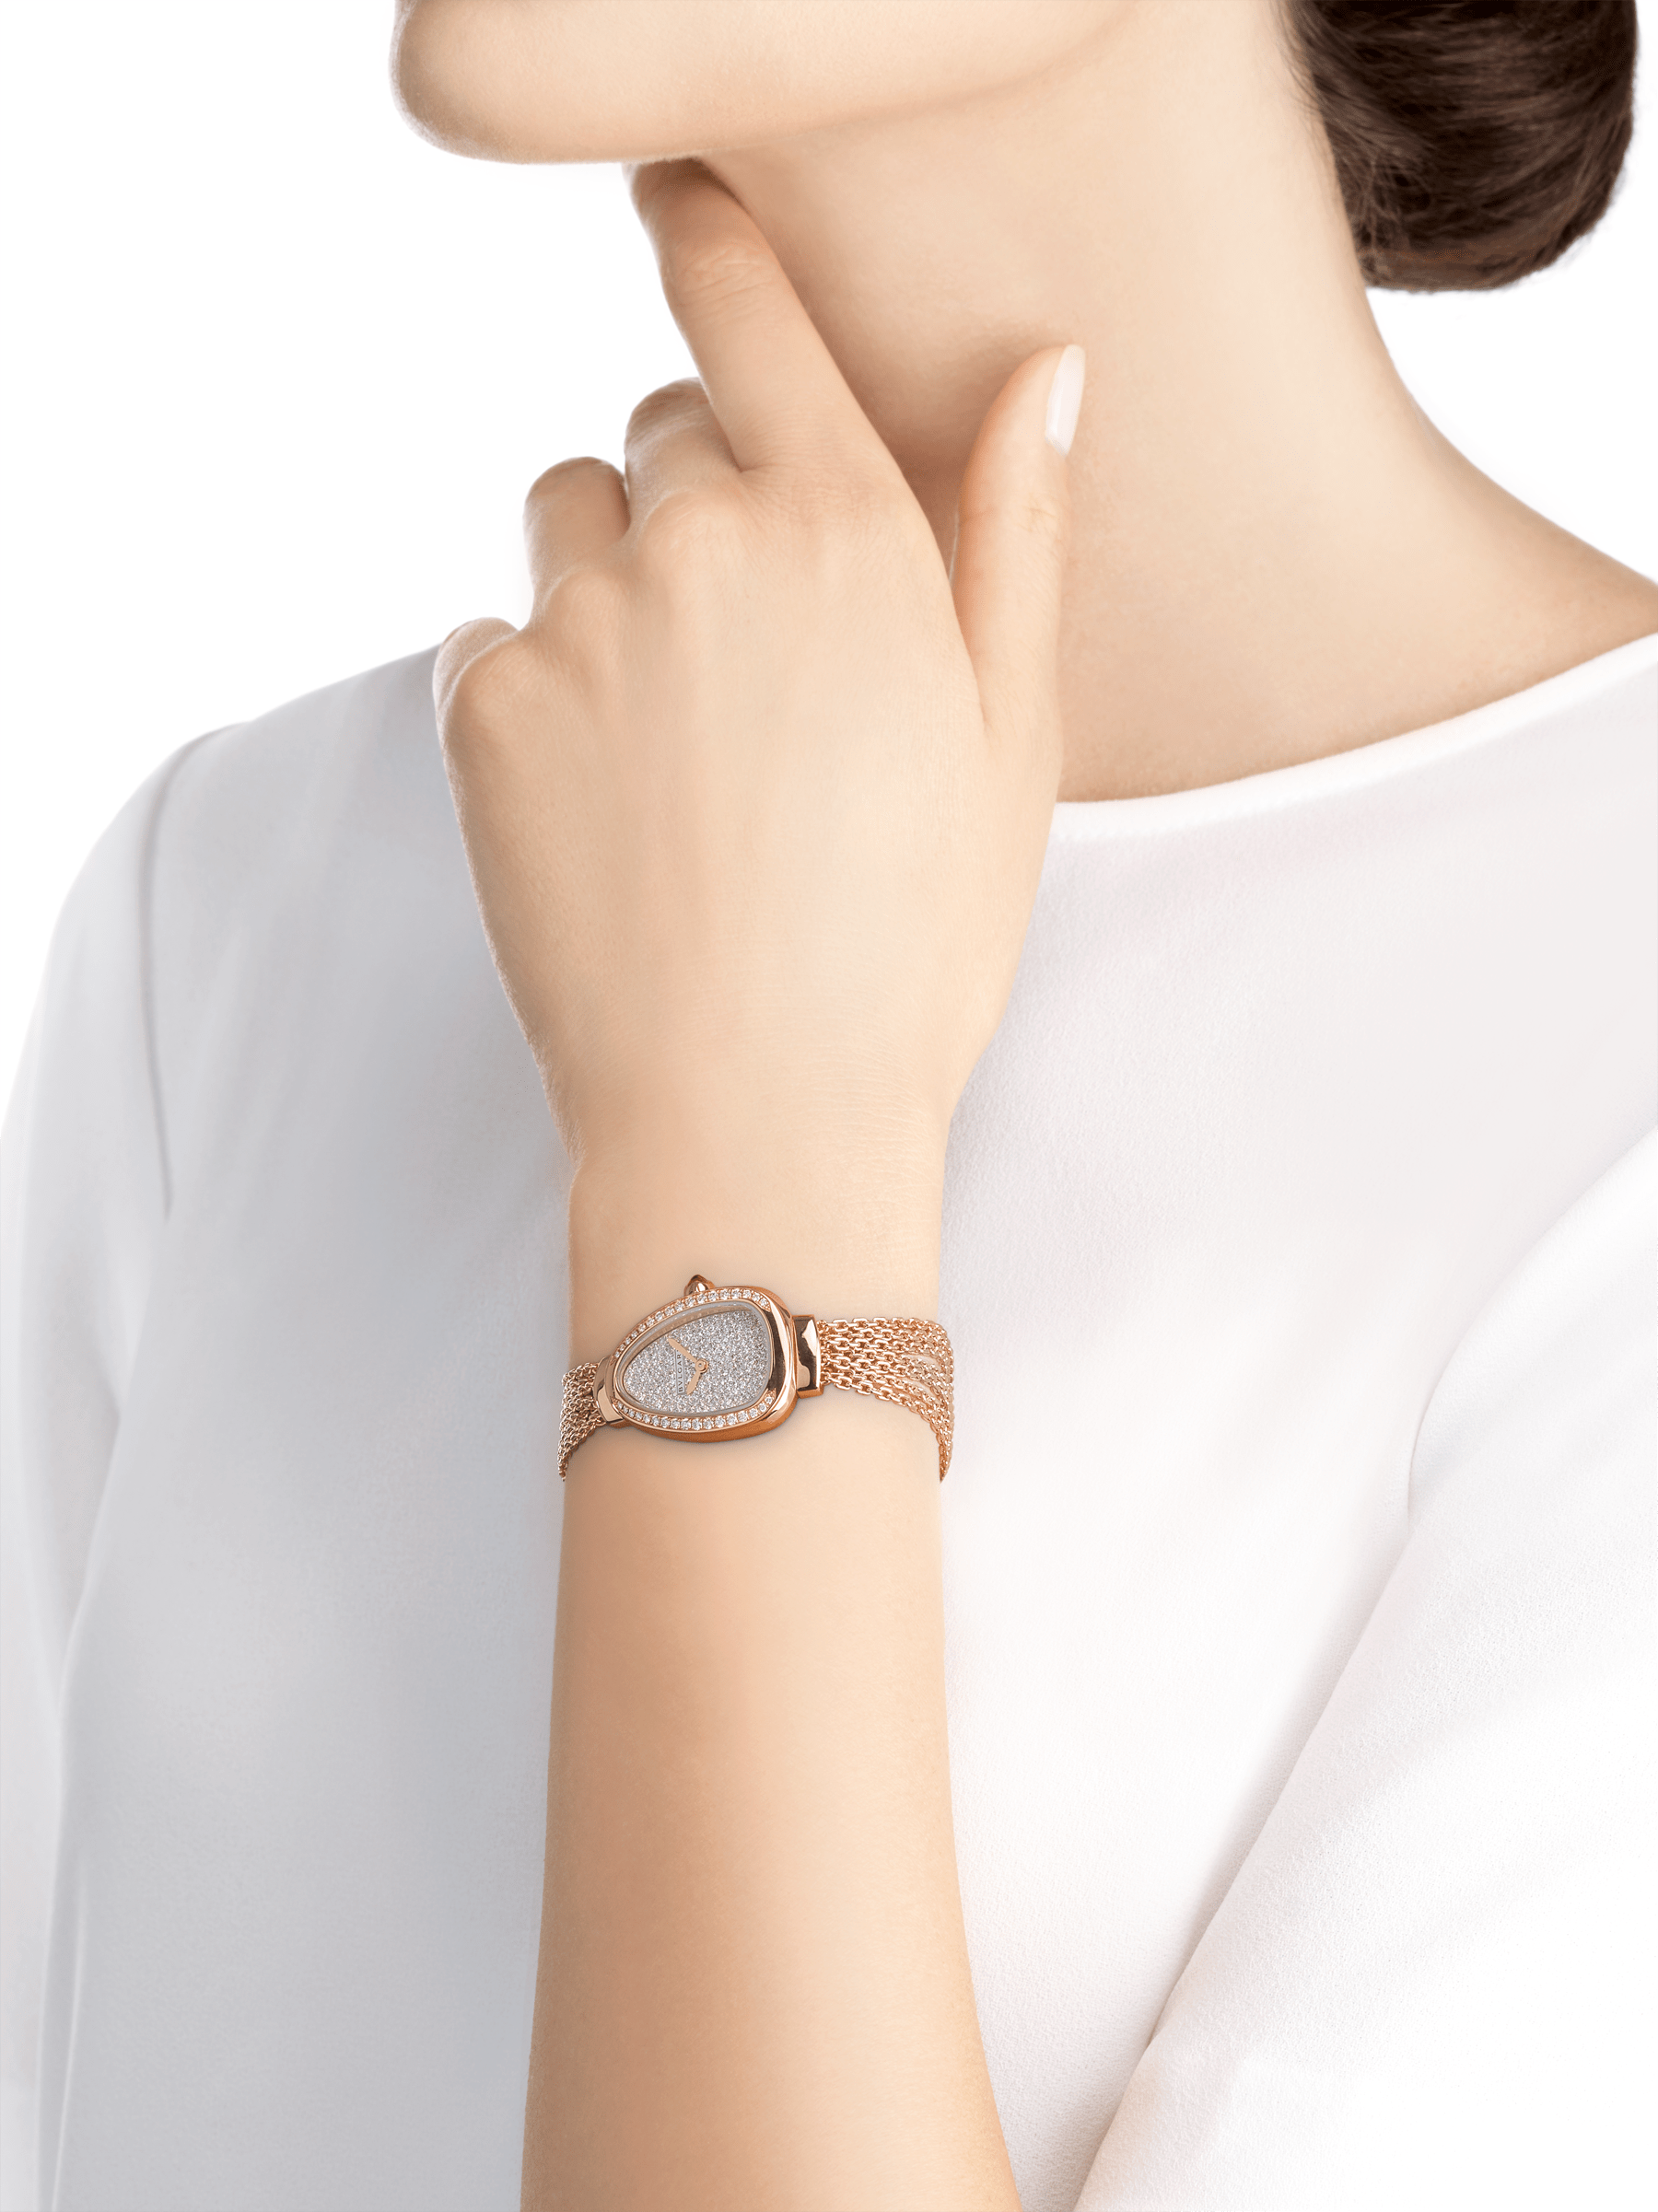 Serpenti watch with 18 kt rose gold case set with brilliant-cut diamonds, snow pavé dial and interchangeable single spiral chain bracelet in 18 kt rose gold 103063 image 4